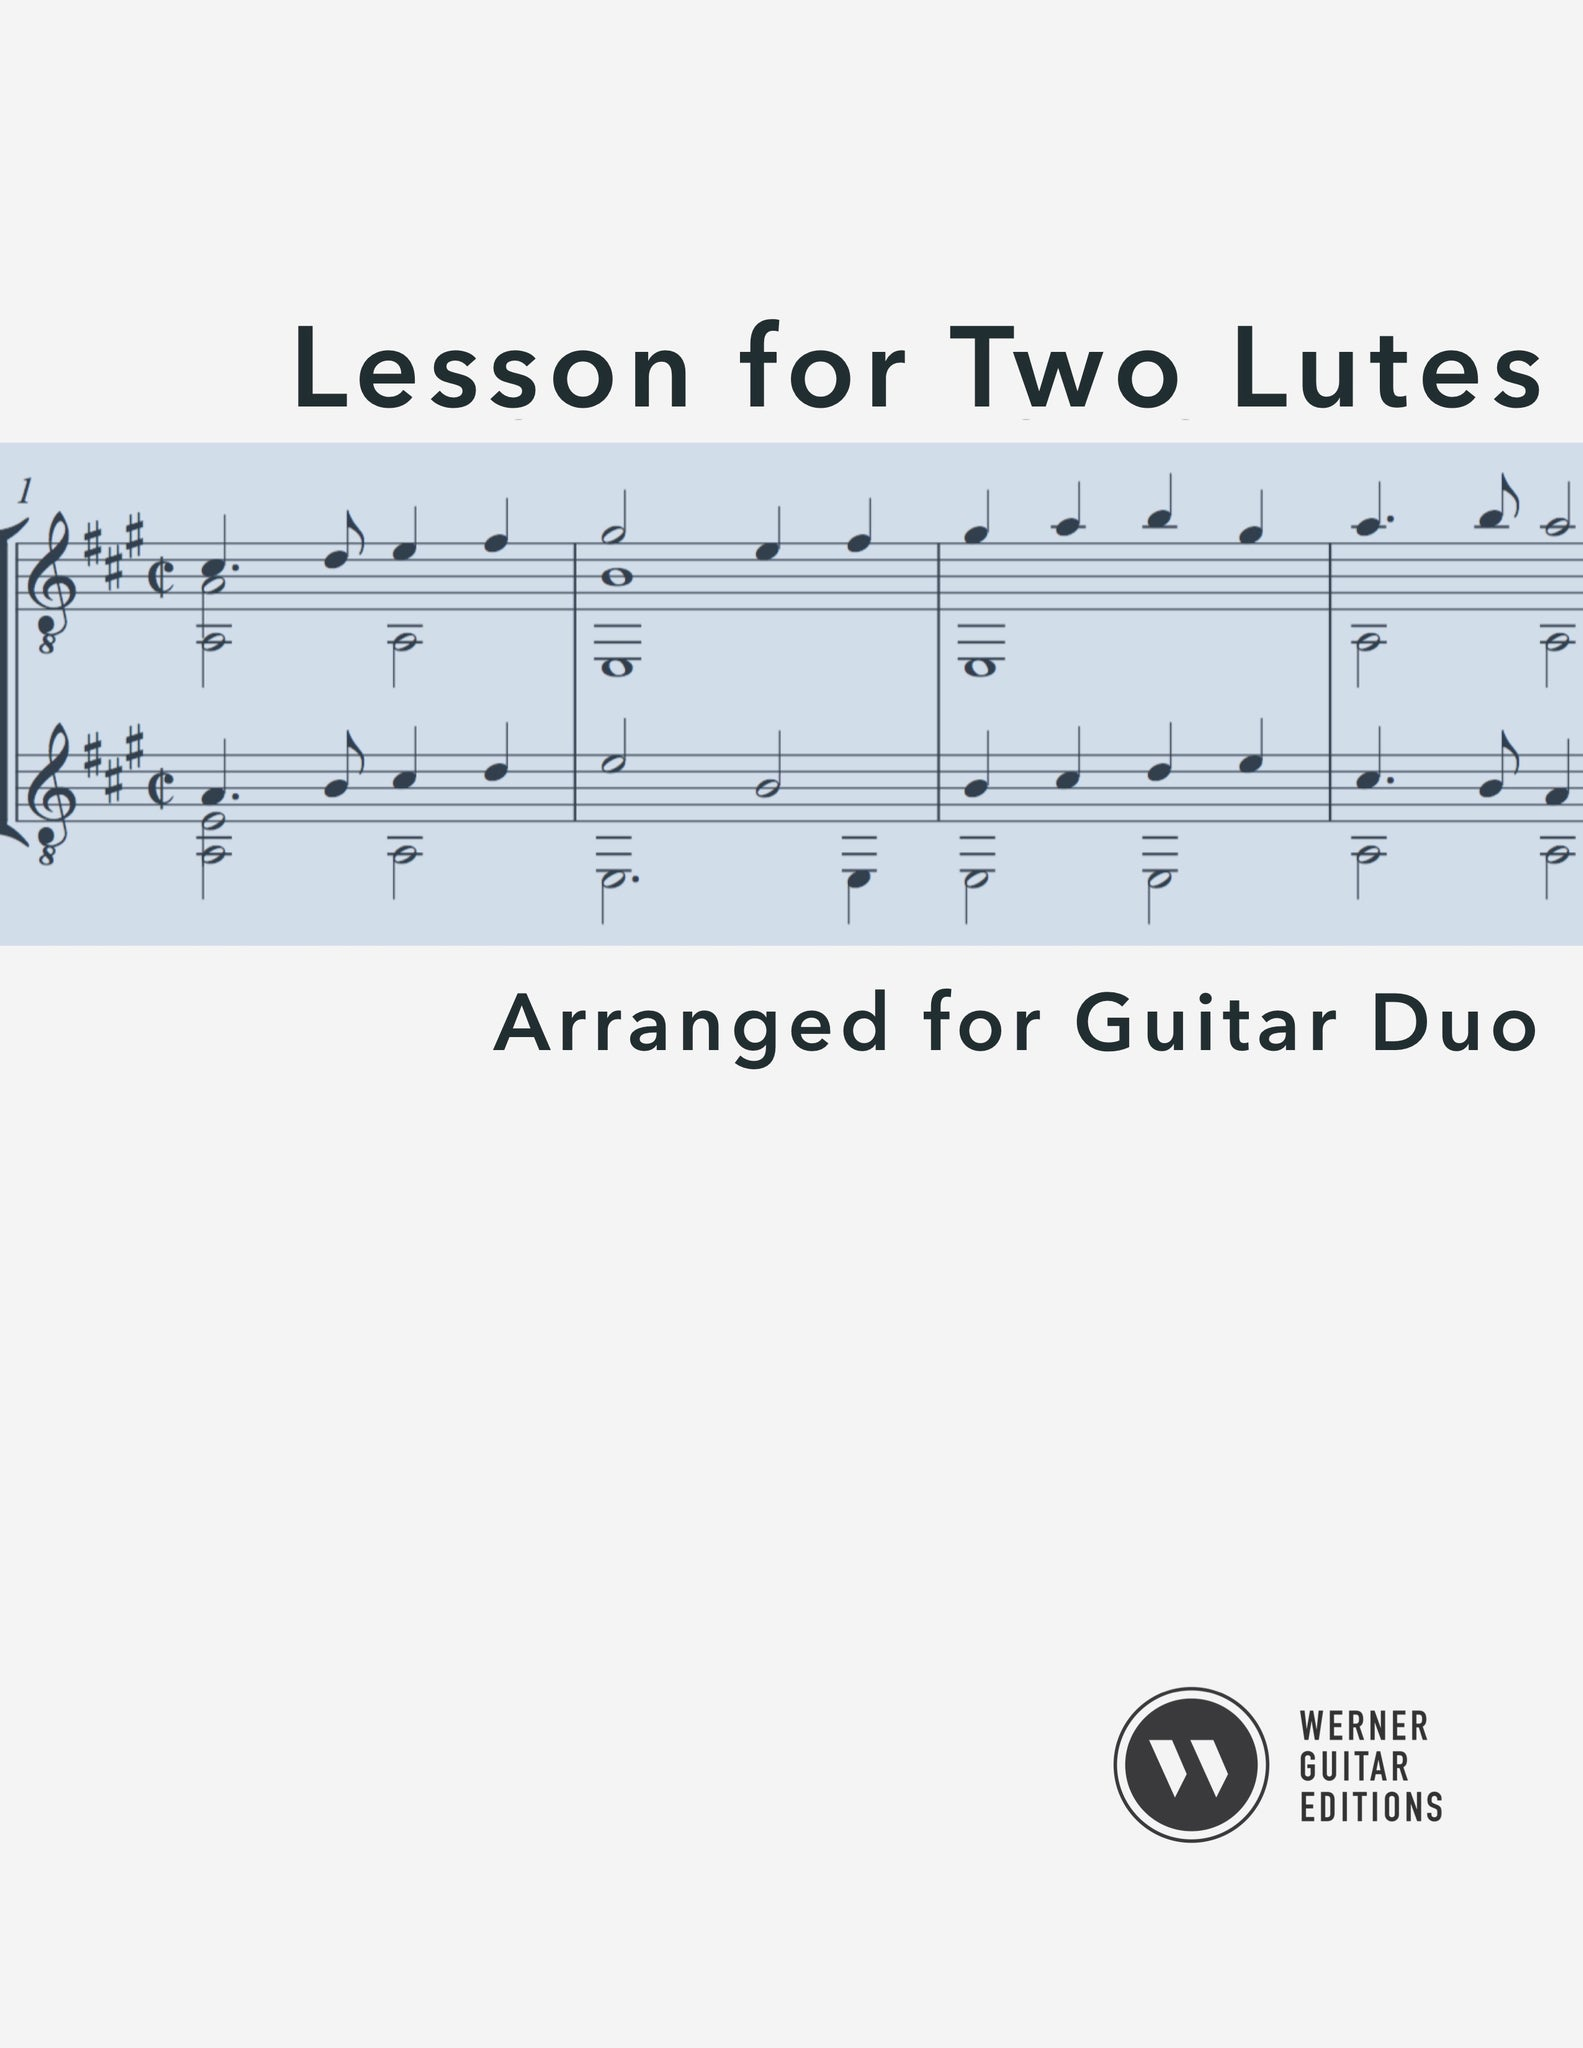 Lesson for Two Lutes - Guitar Duet (PDF)